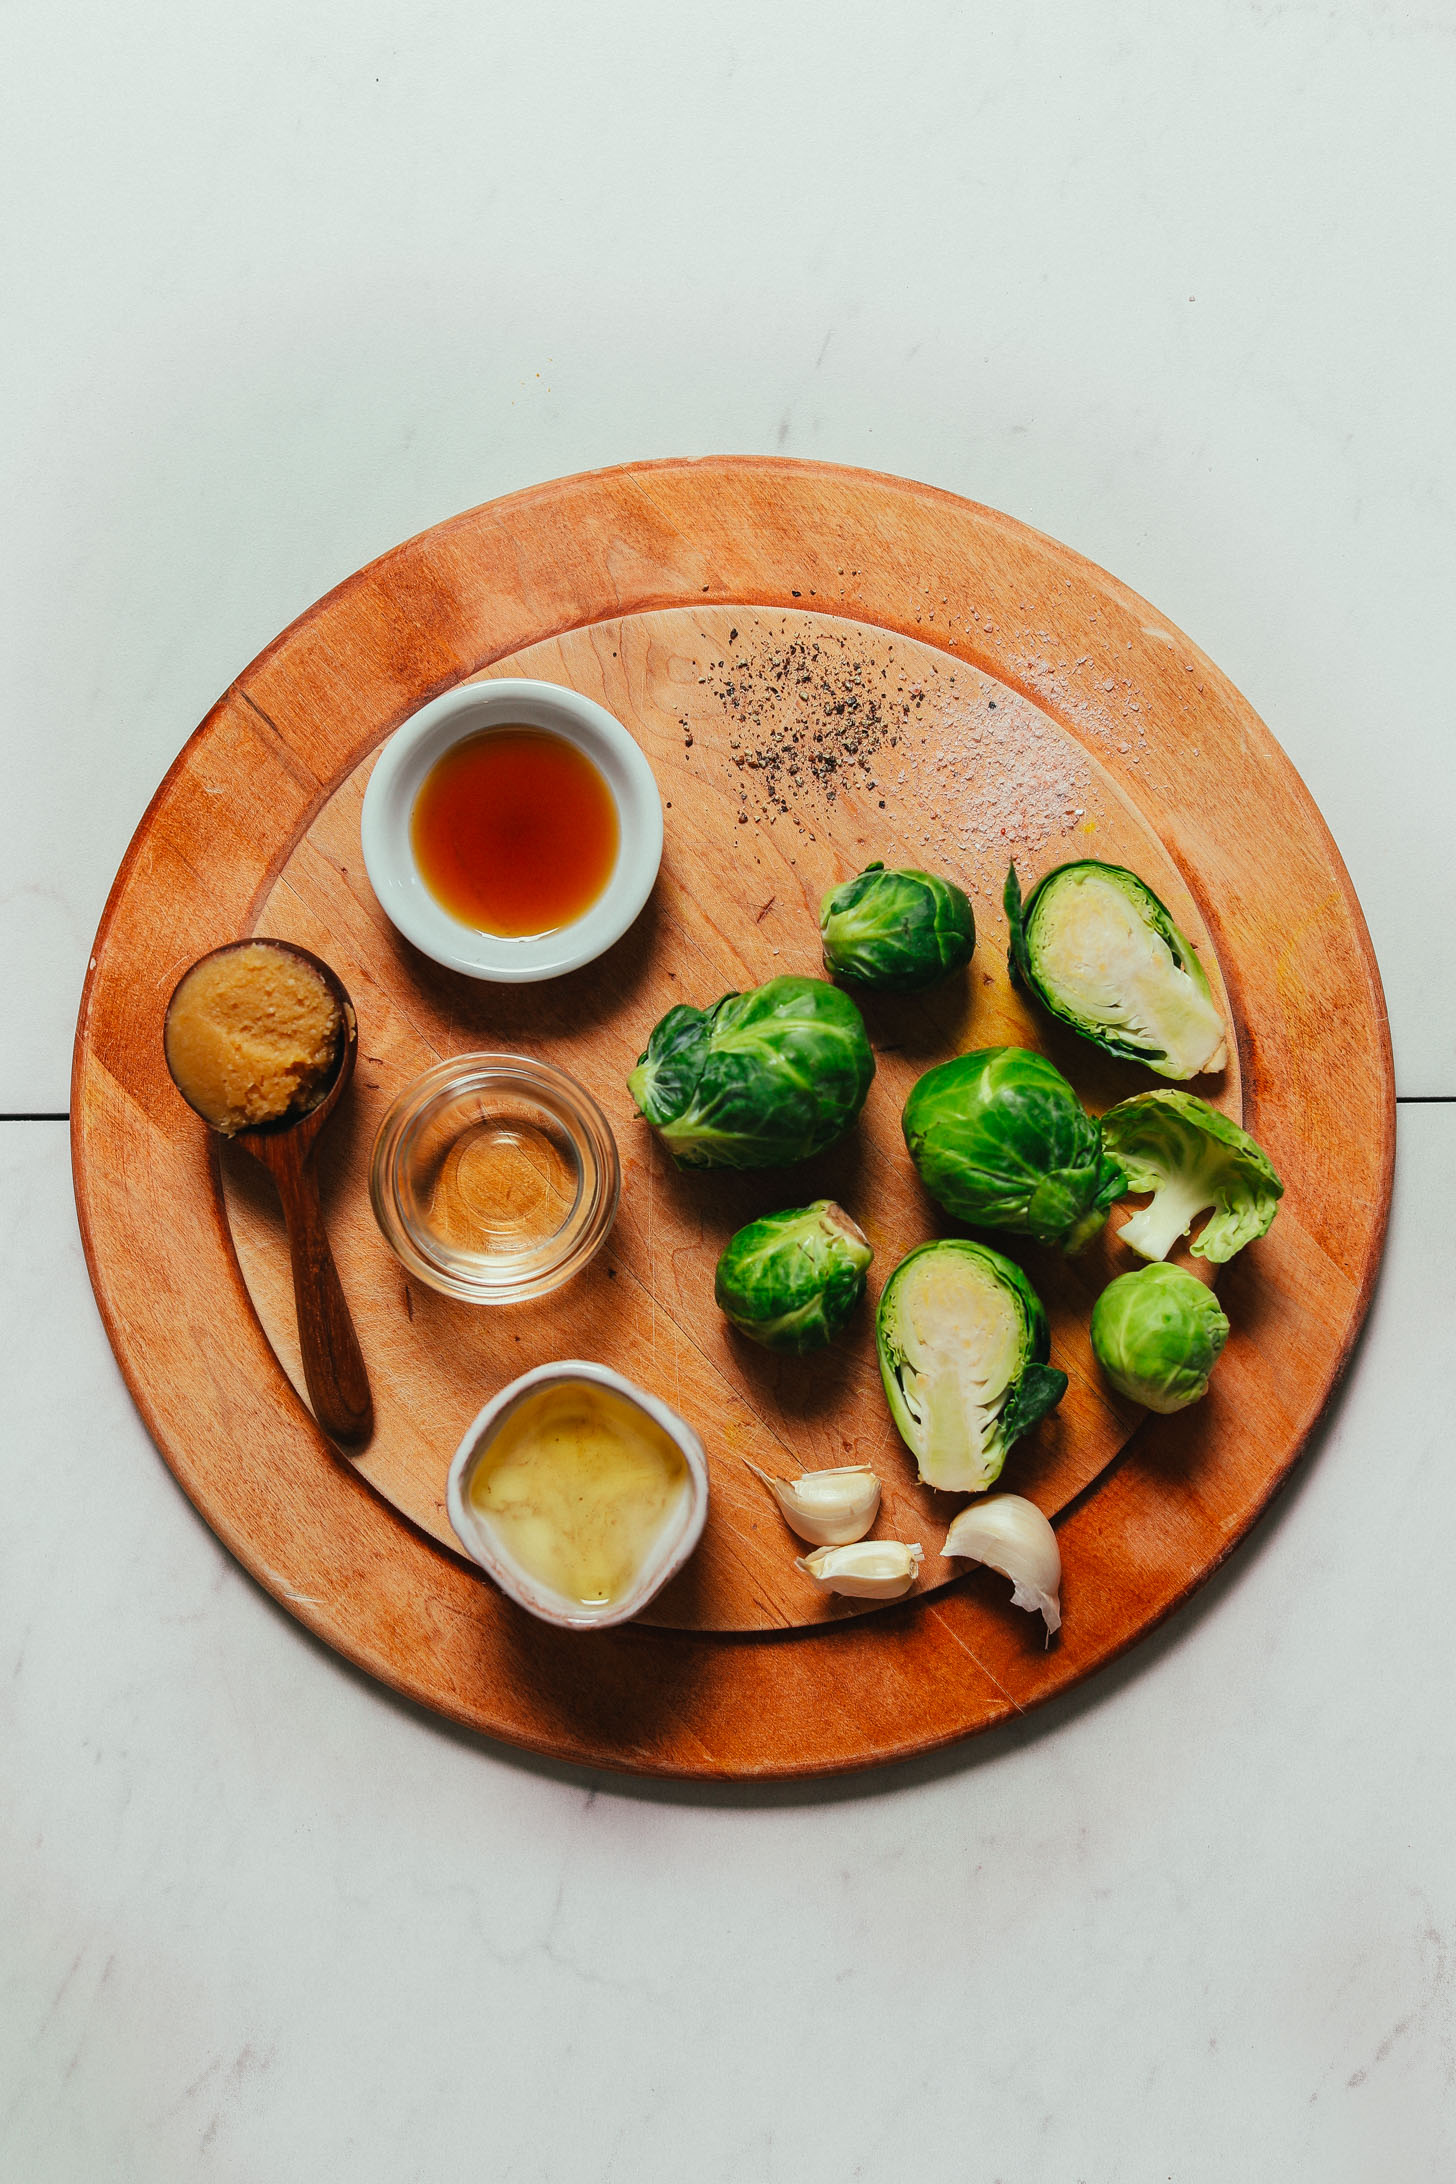 Wood cutting board with ingredients for making our easy Roasted Brussels Sprouts recipe